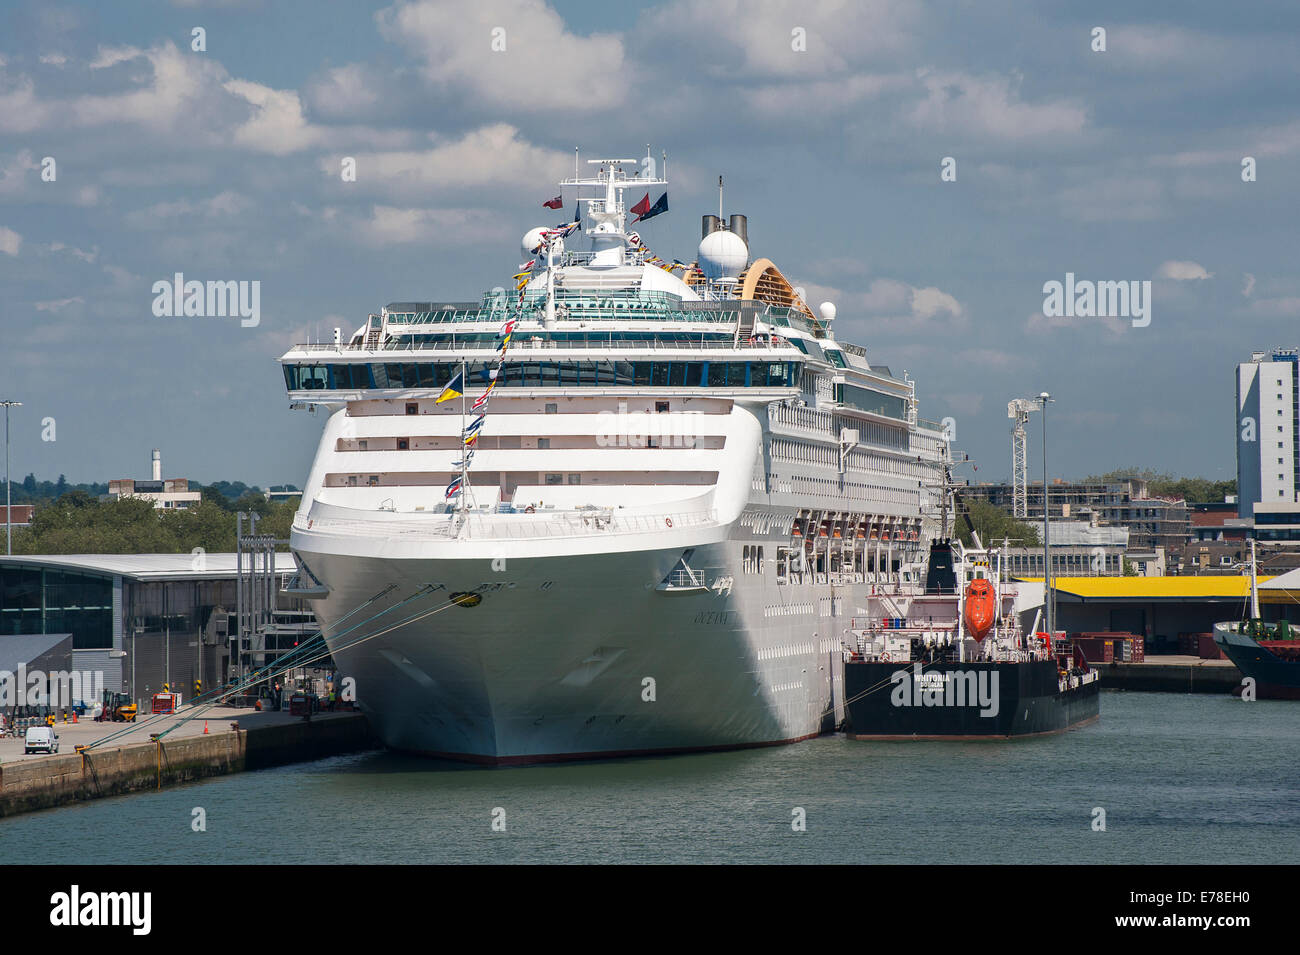 P&O's cruise ship Oceana in port at Southampton, England. - Stock Image